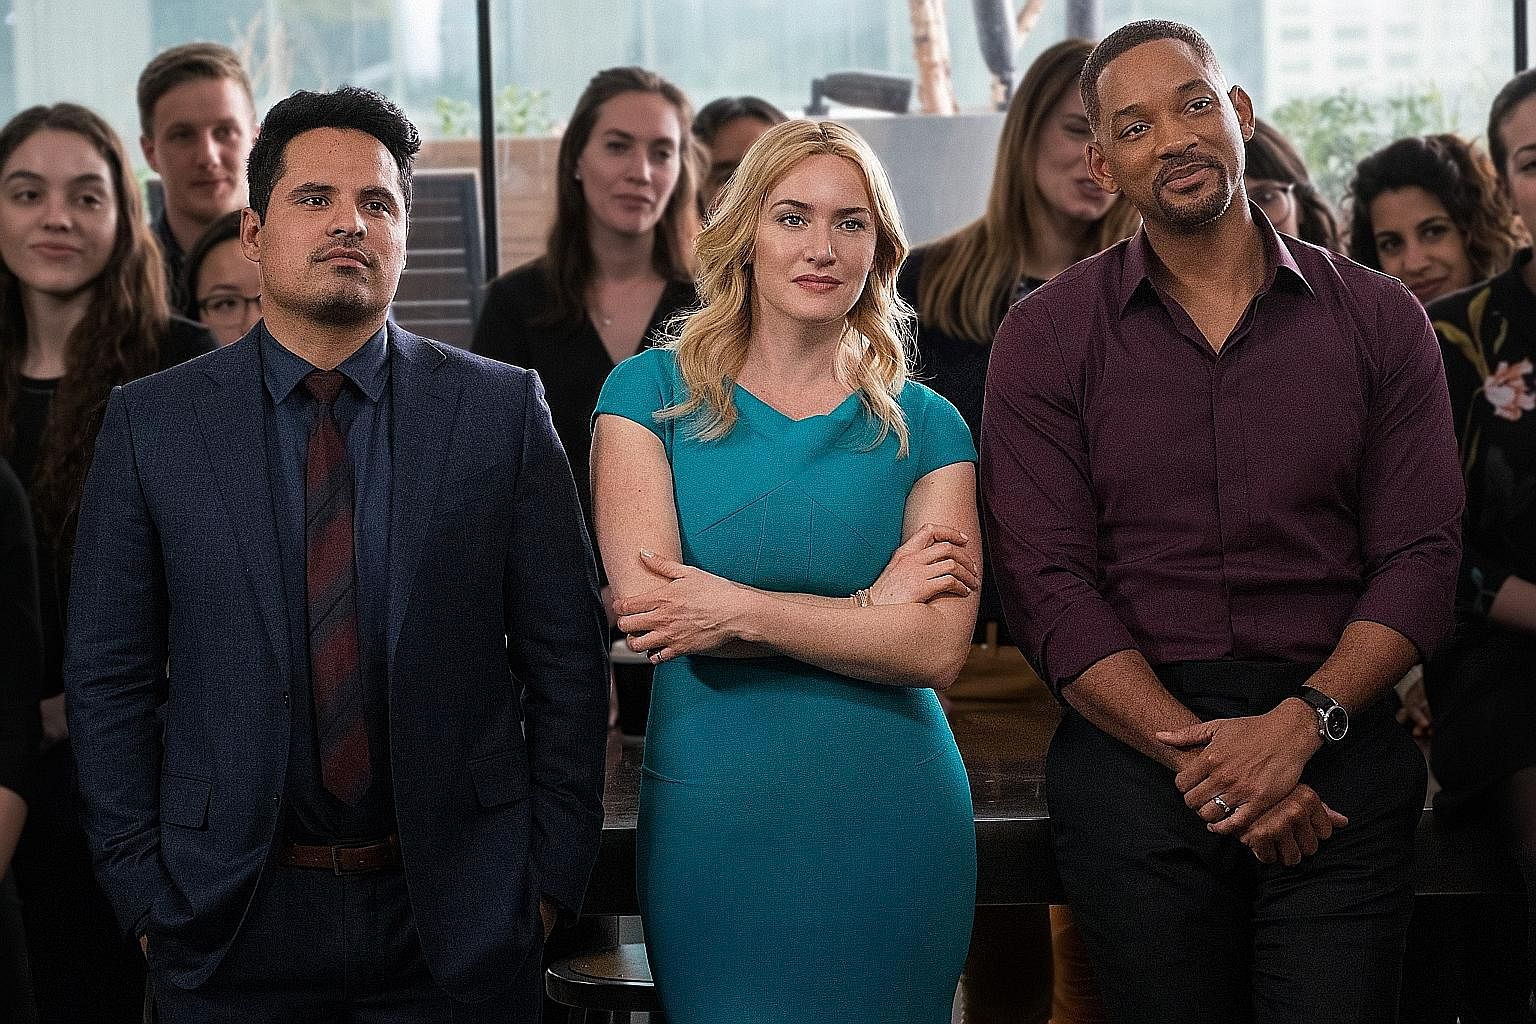 Gong Yoo in Age Of Shadows; Marion Cotillard and Brad Pitt in Allied; and Michael Pena, Kate Winslet and Will Smith in Collateral Beauty (above).